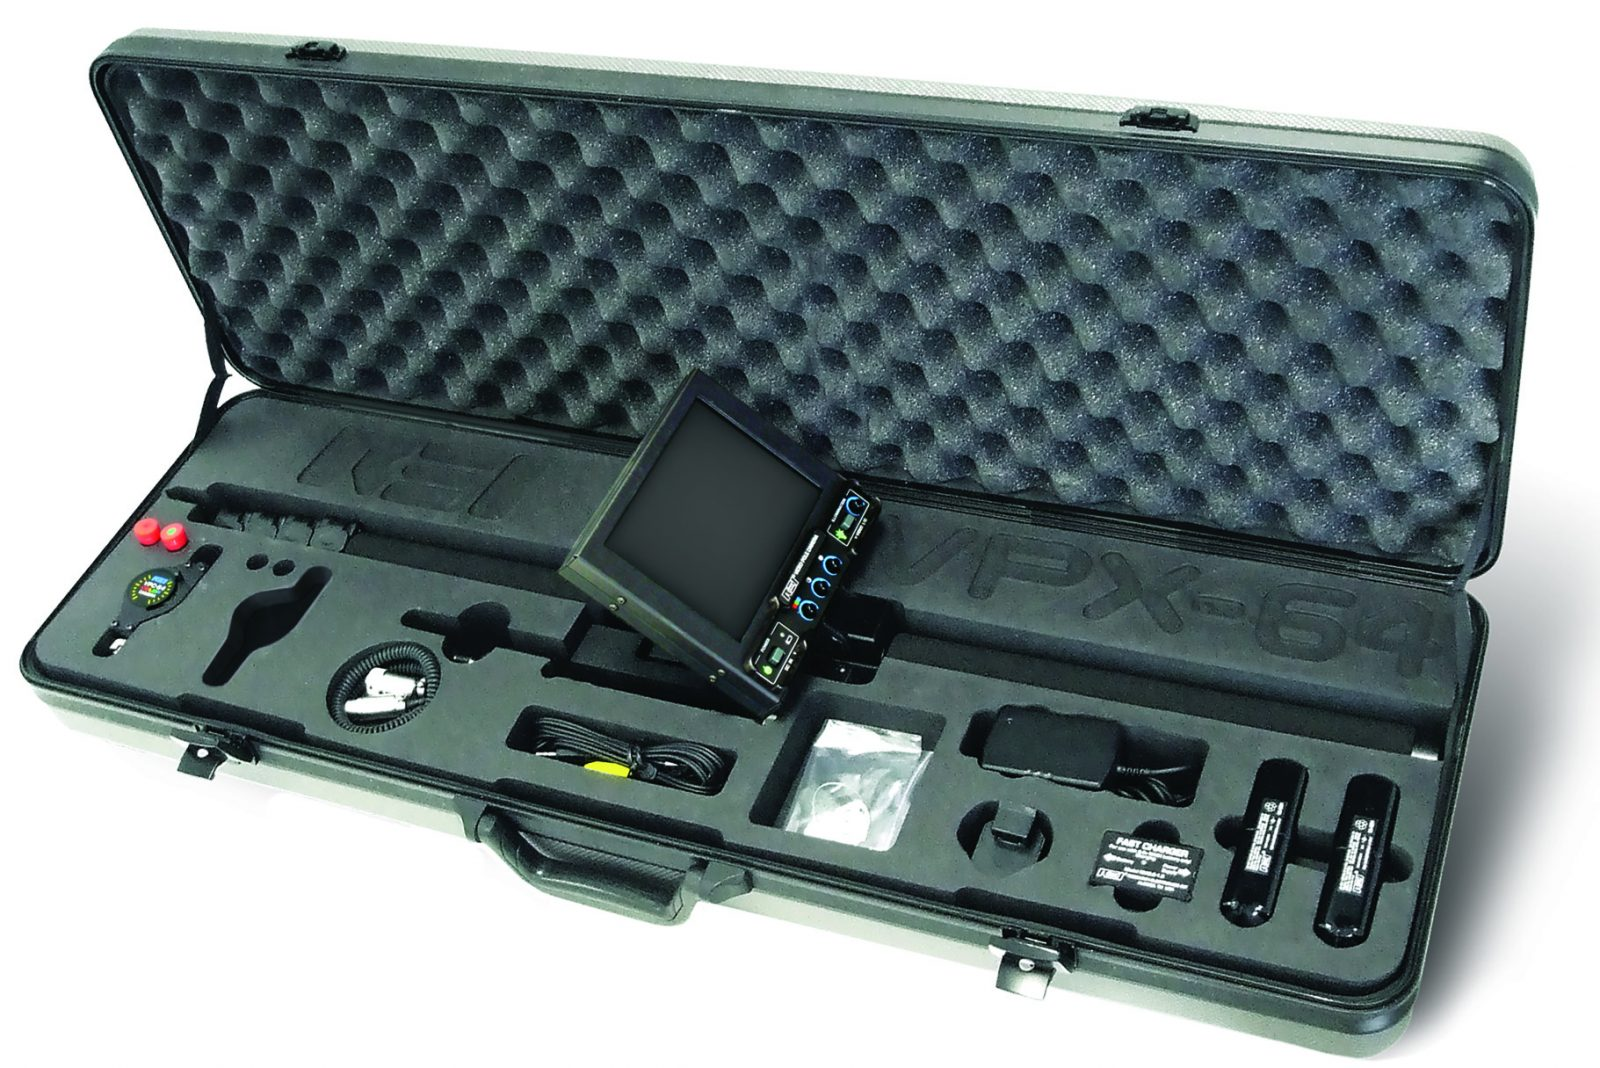 VPX-64 Video Pole Camera in case with accessories